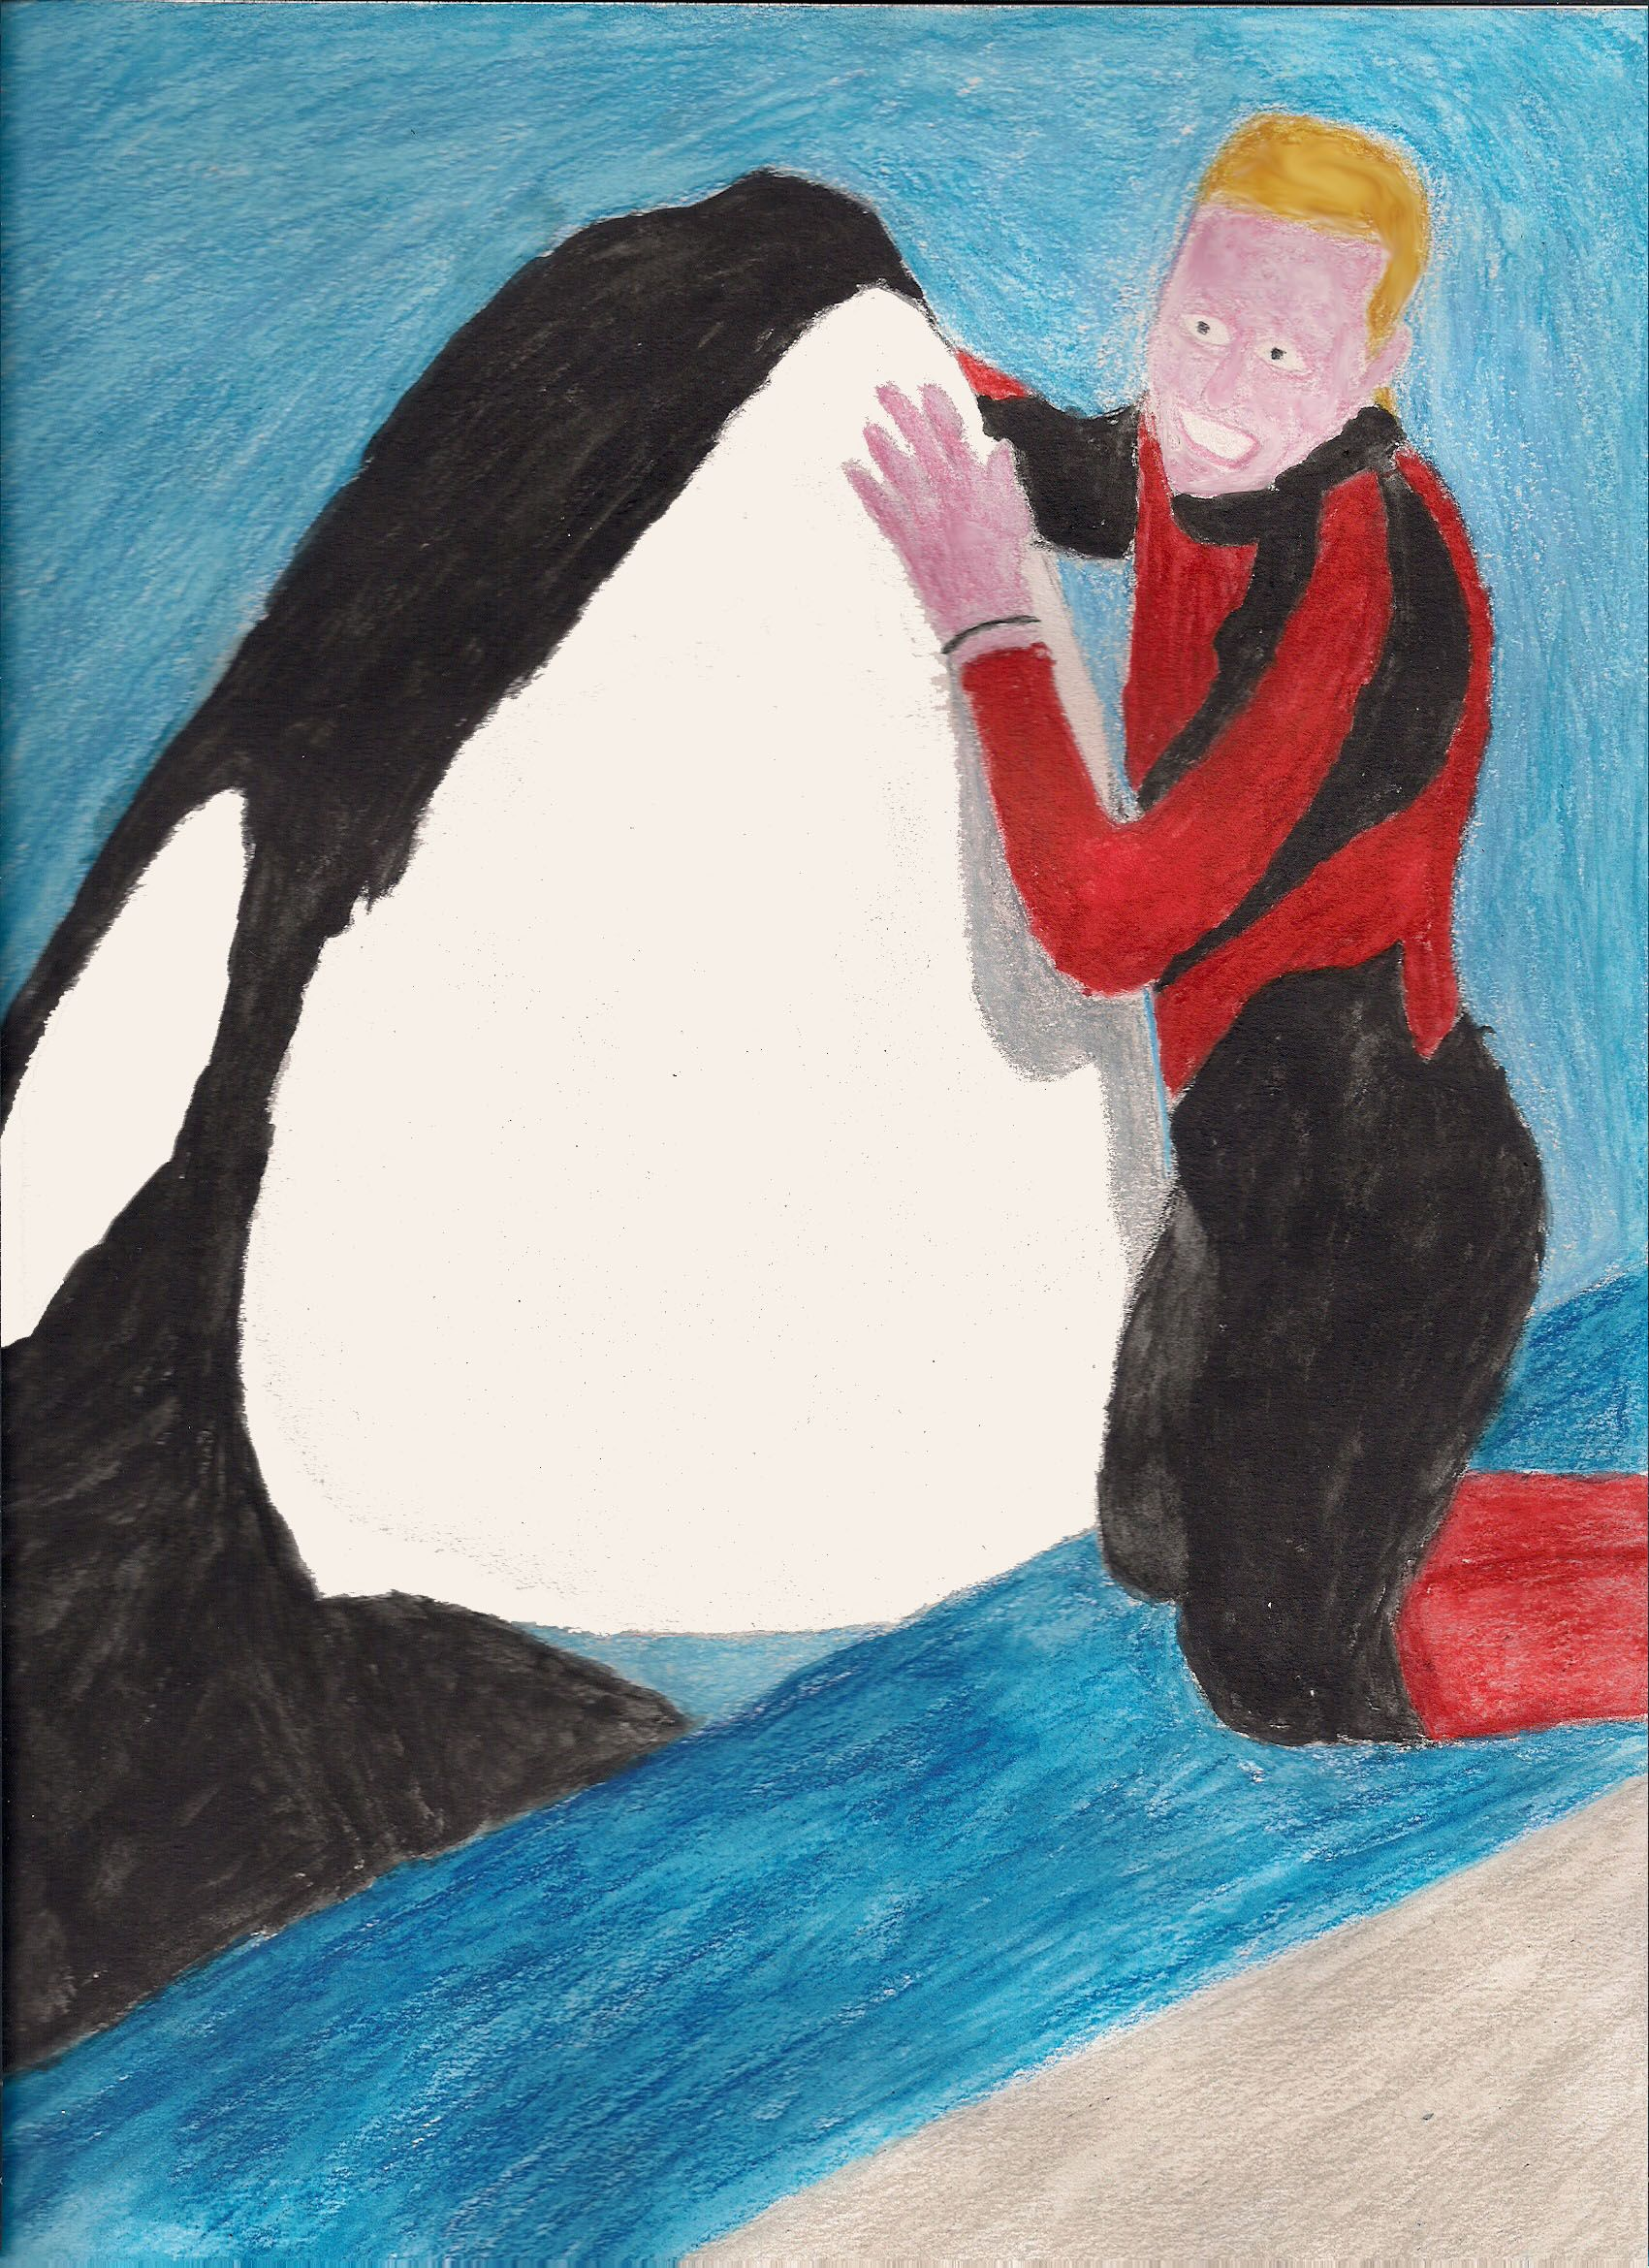 I drew this in memory of Dawn Brancheau, a trainer at SeaWorld Orlando who died on February 24, 2010.